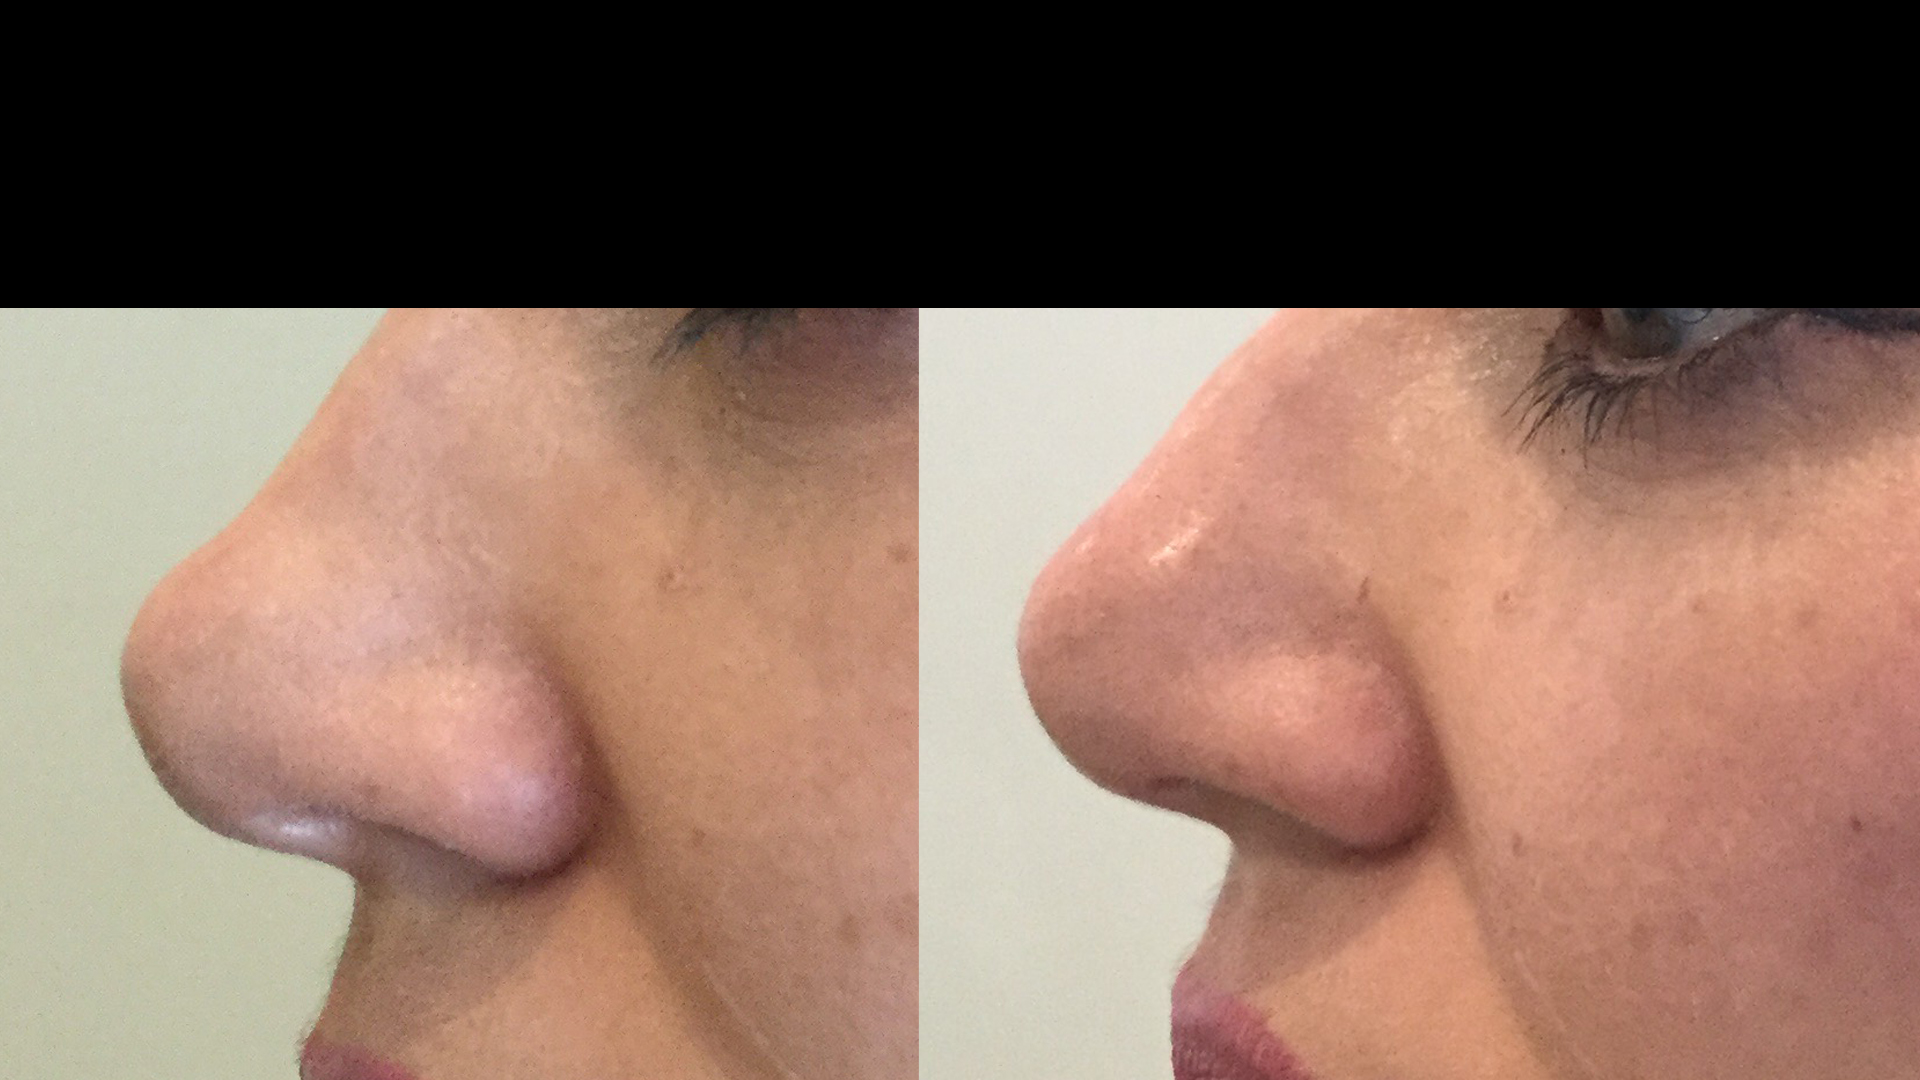 Non Surgical Rhinoplasty Using Dermal Fillers At Well Medical Arts. Learn More About The Non Surgical Nose Job At Non Surgical Rhinoplasty